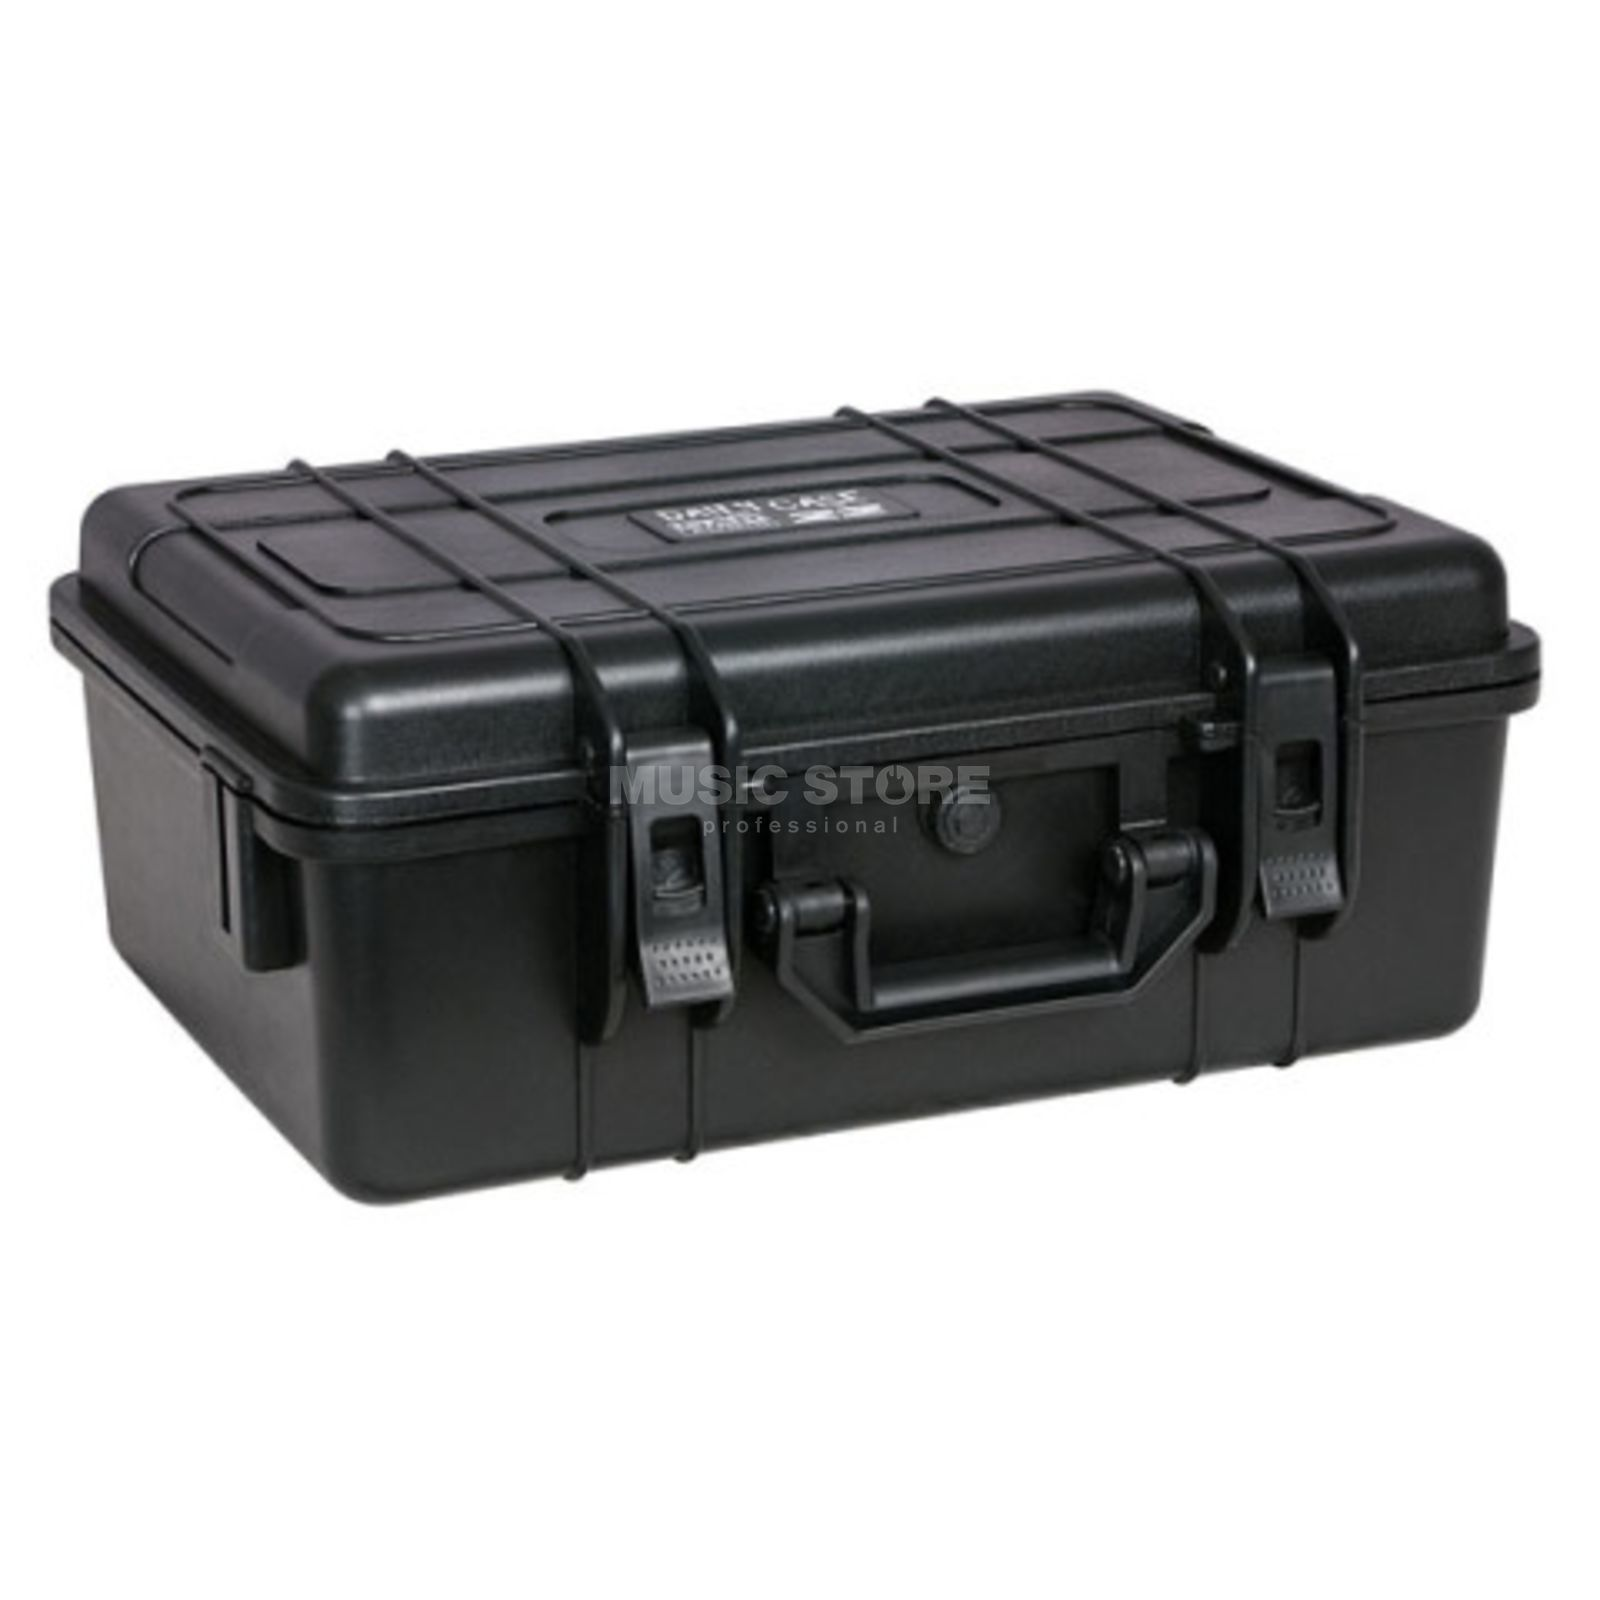 DAP Audio Daily Case 22 IP 65, Black Product Image